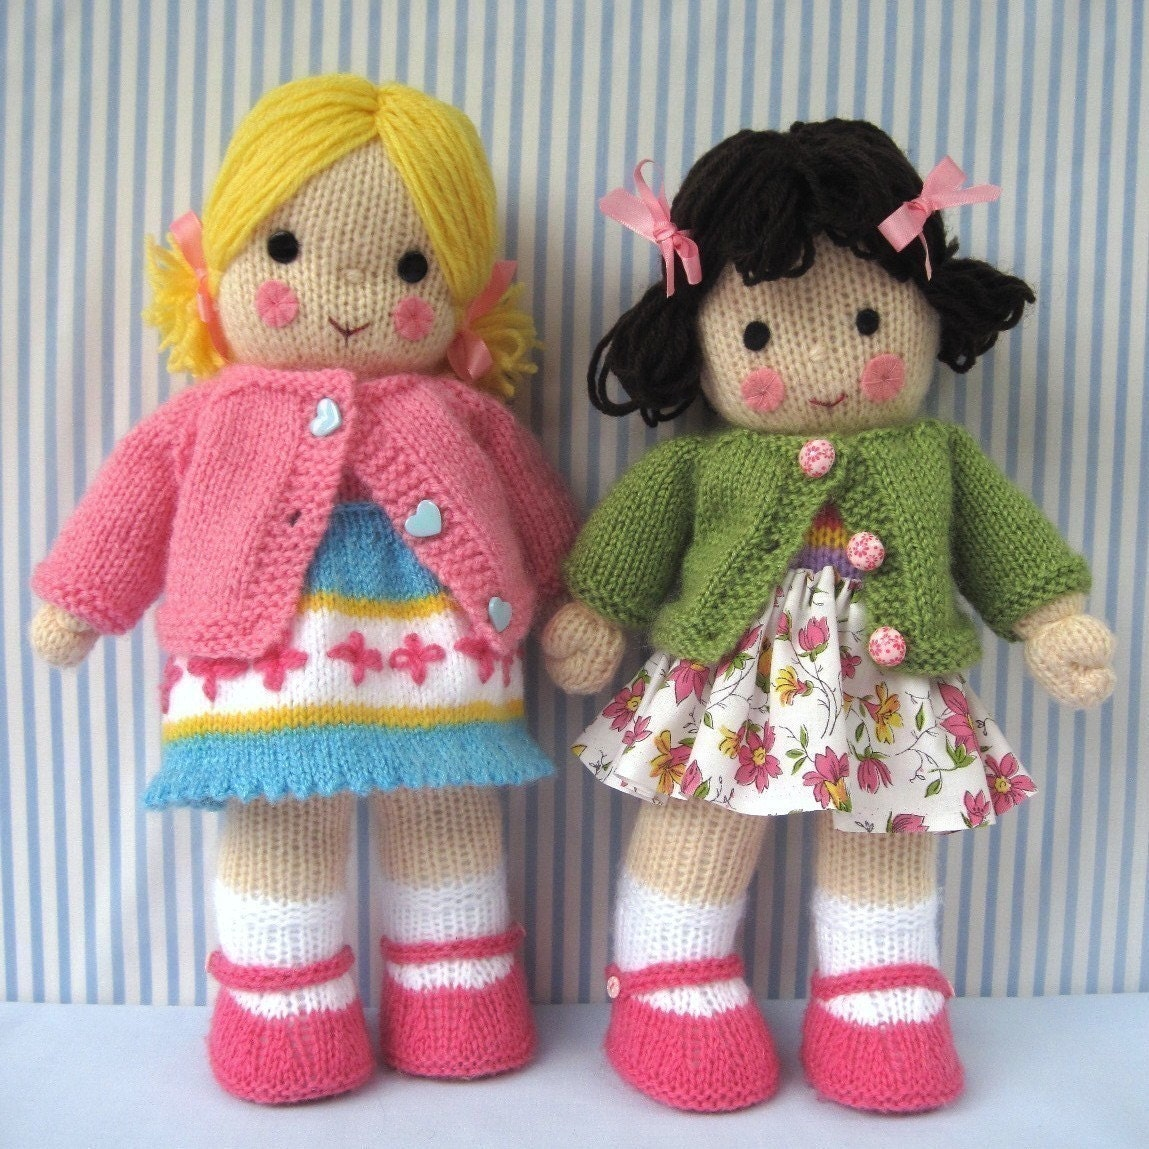 Free Knitted Doll Pattern : POLLY and KATE knitted toy dolls PDF email knitting